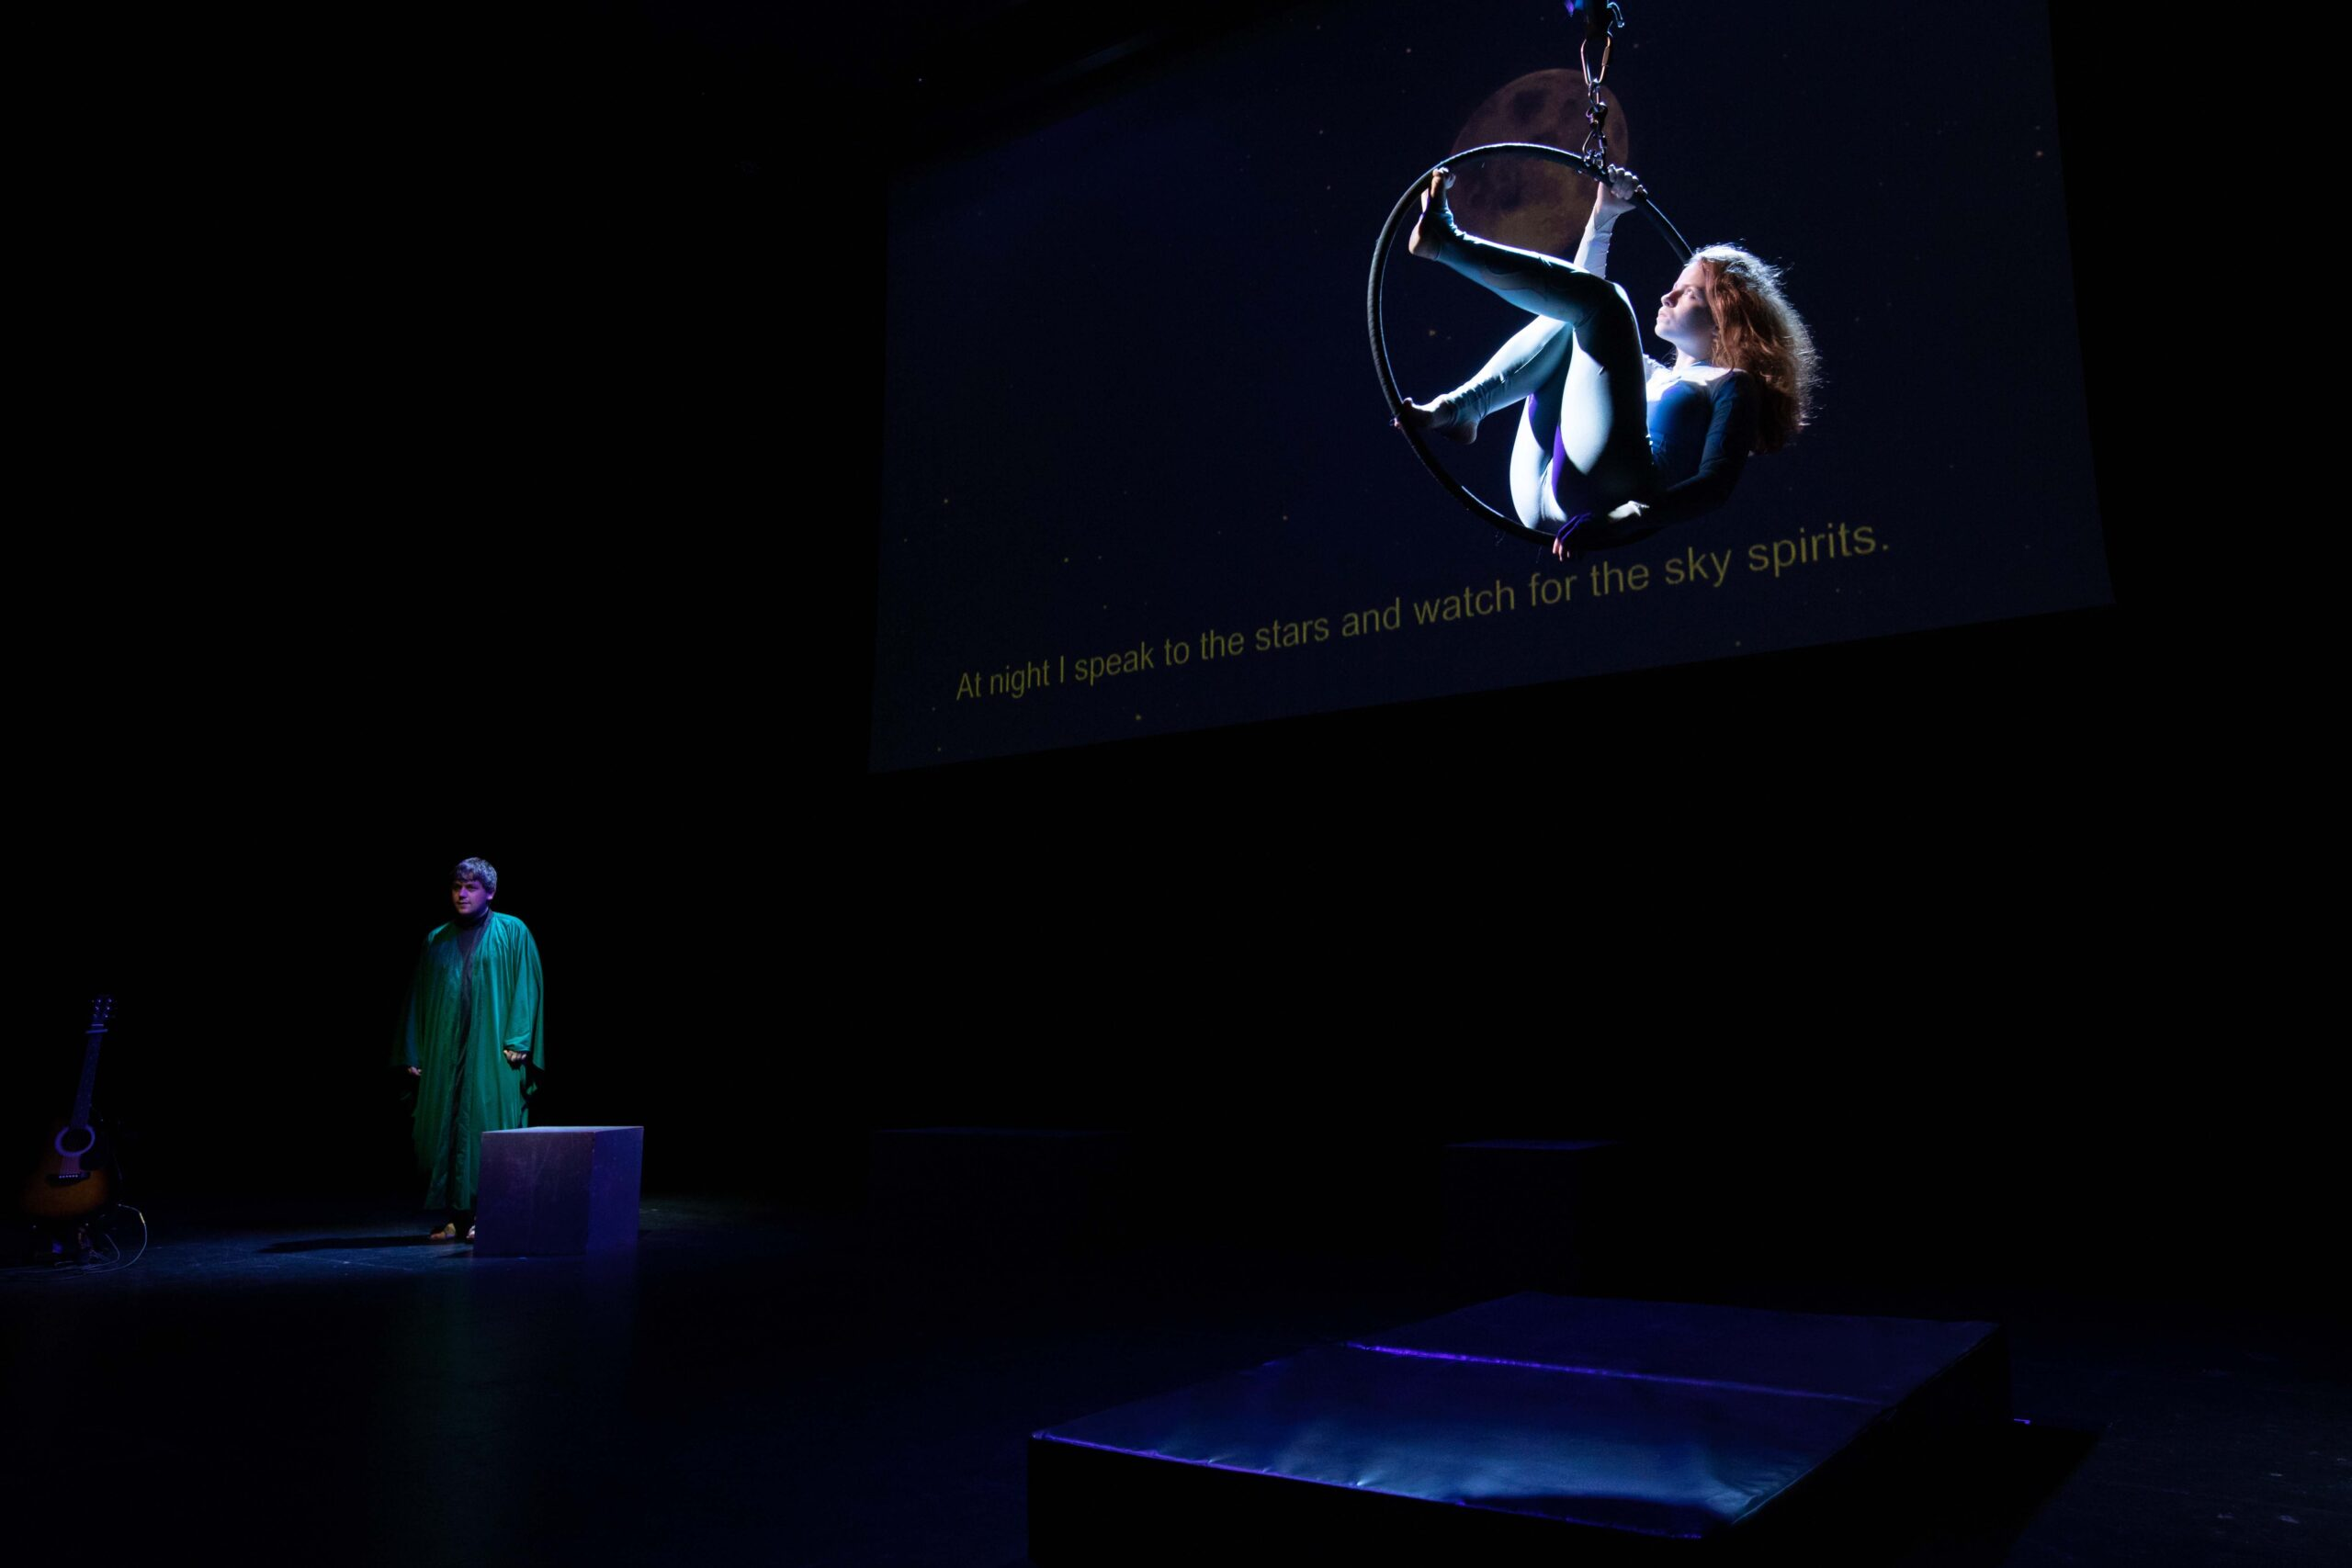 A dimly-lit stage, with soft, deep blue light on two performers. The first one is in the foreground, sitting delicately on a circus hoop that holds them up in the air. They are female-presenting, with long golden hair and a light blue lycra one piece. In the background, a male-presenting performer is dressed like a priest. They stand, looking ahead of them towards the audience.